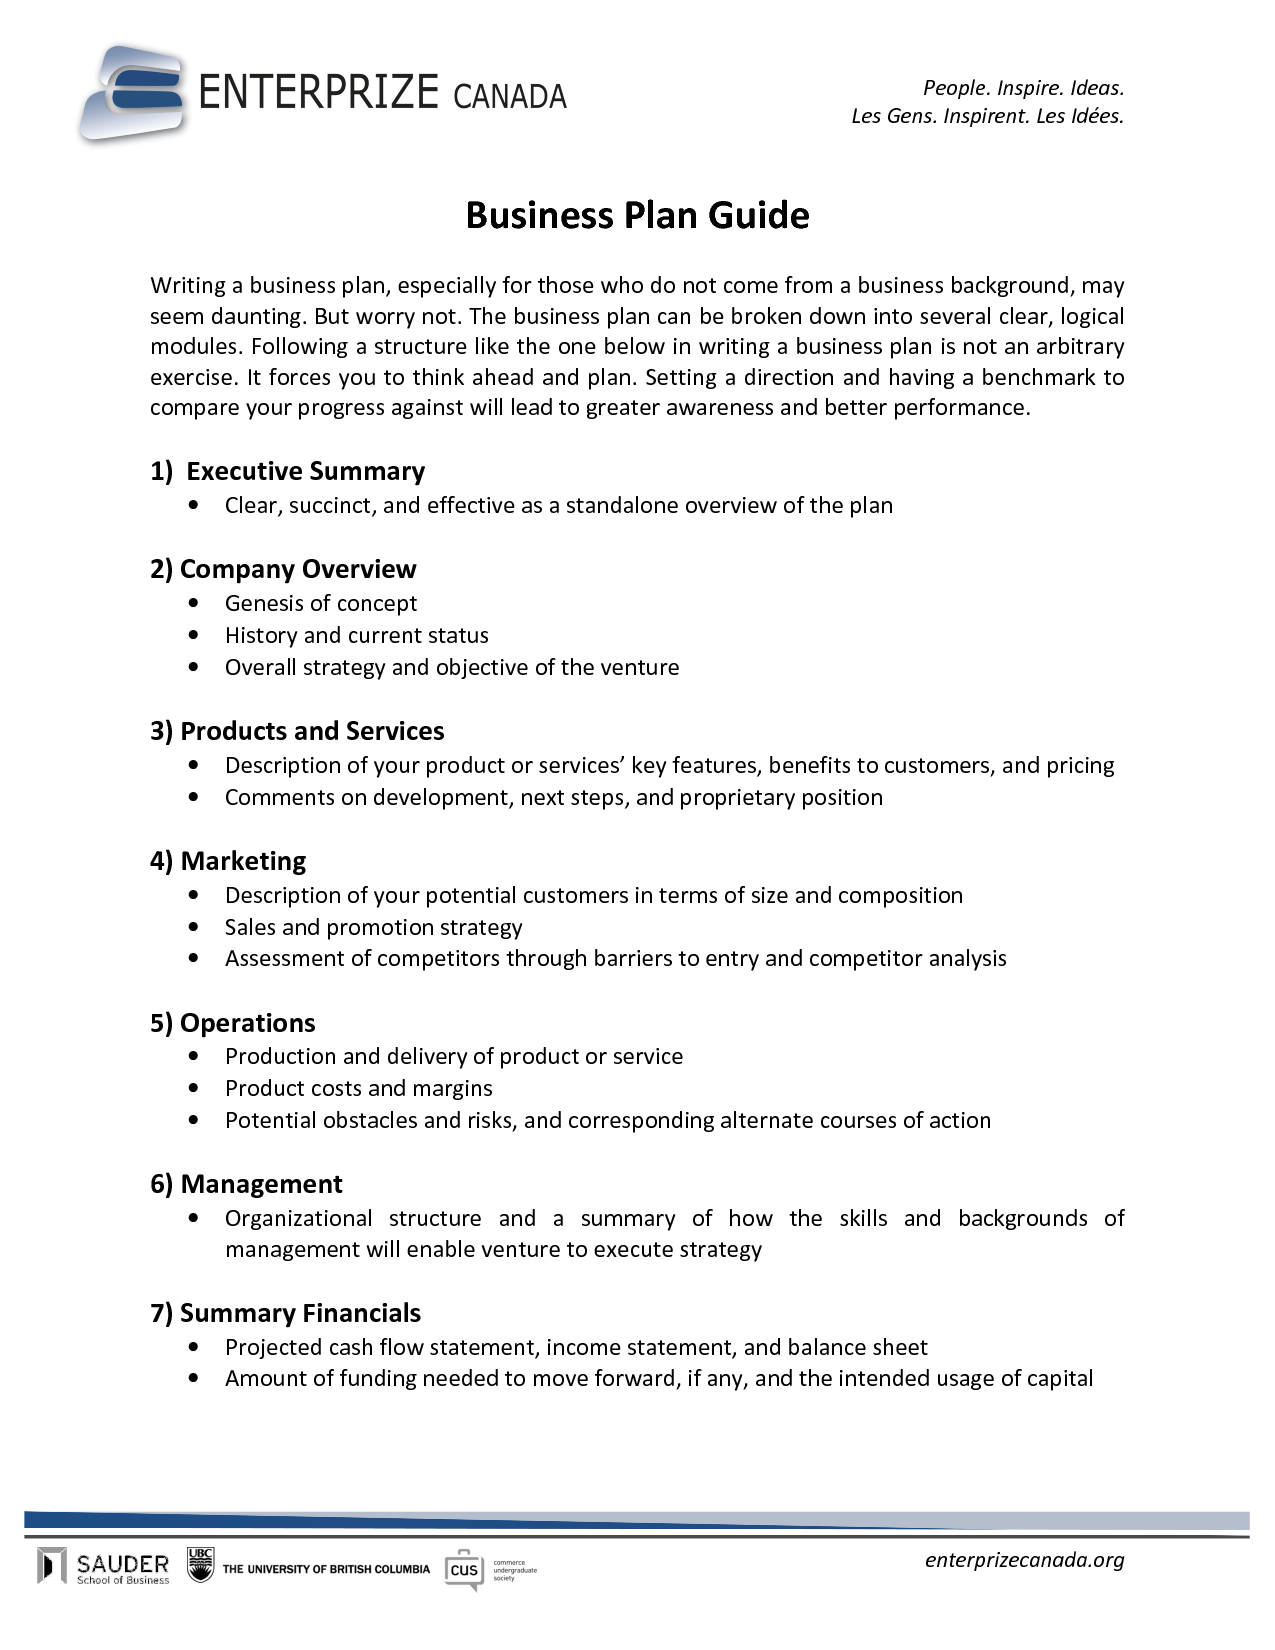 Outline of business management